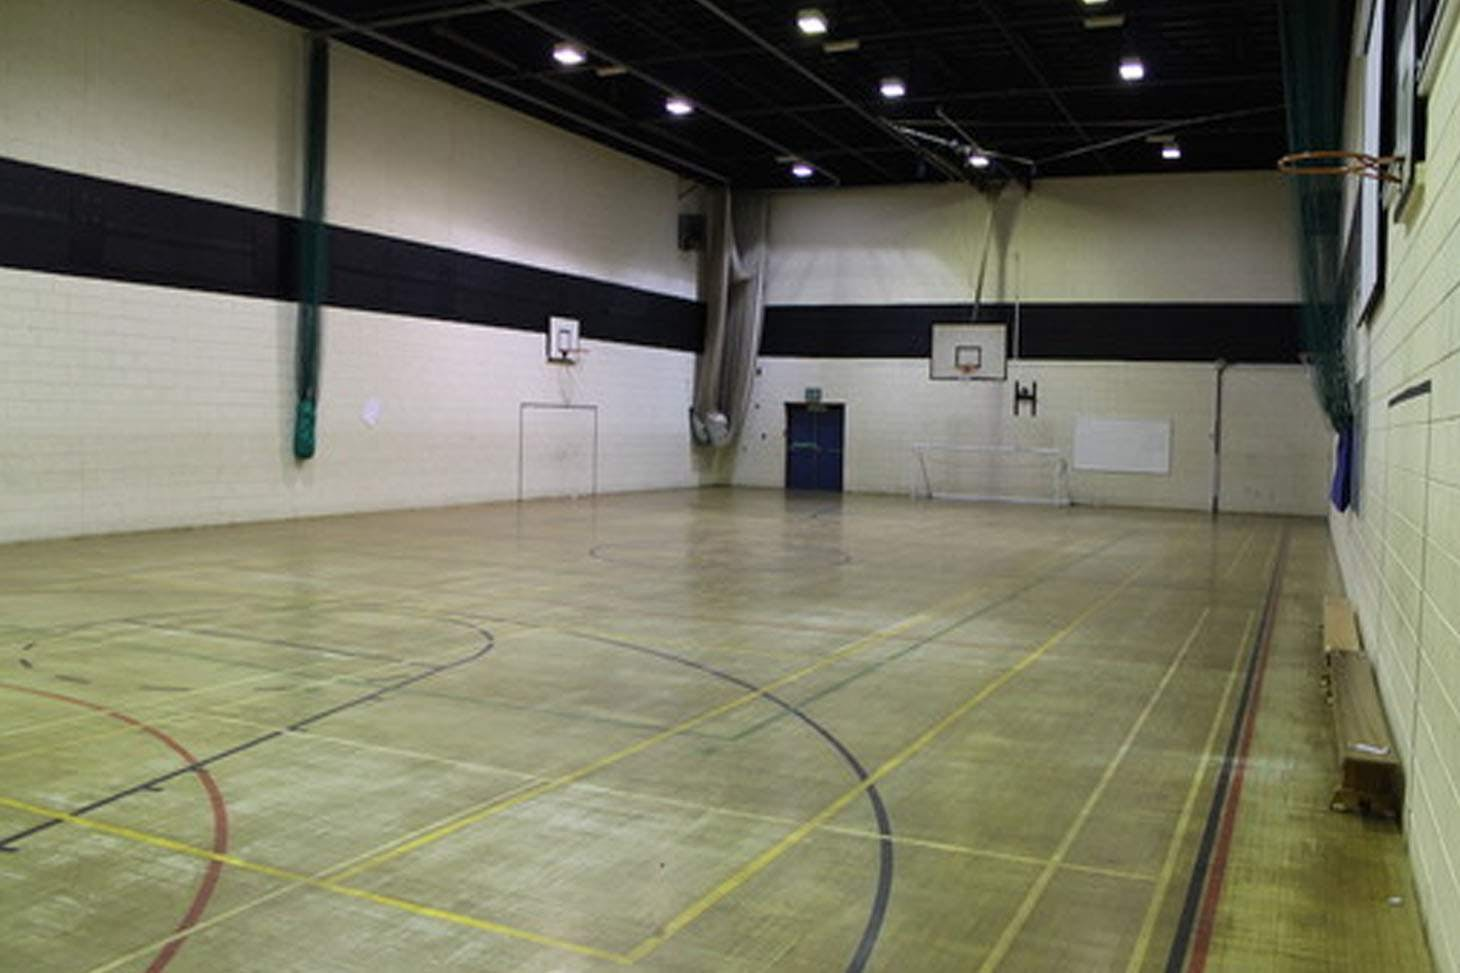 Thornleigh Salesian College Indoor badminton court